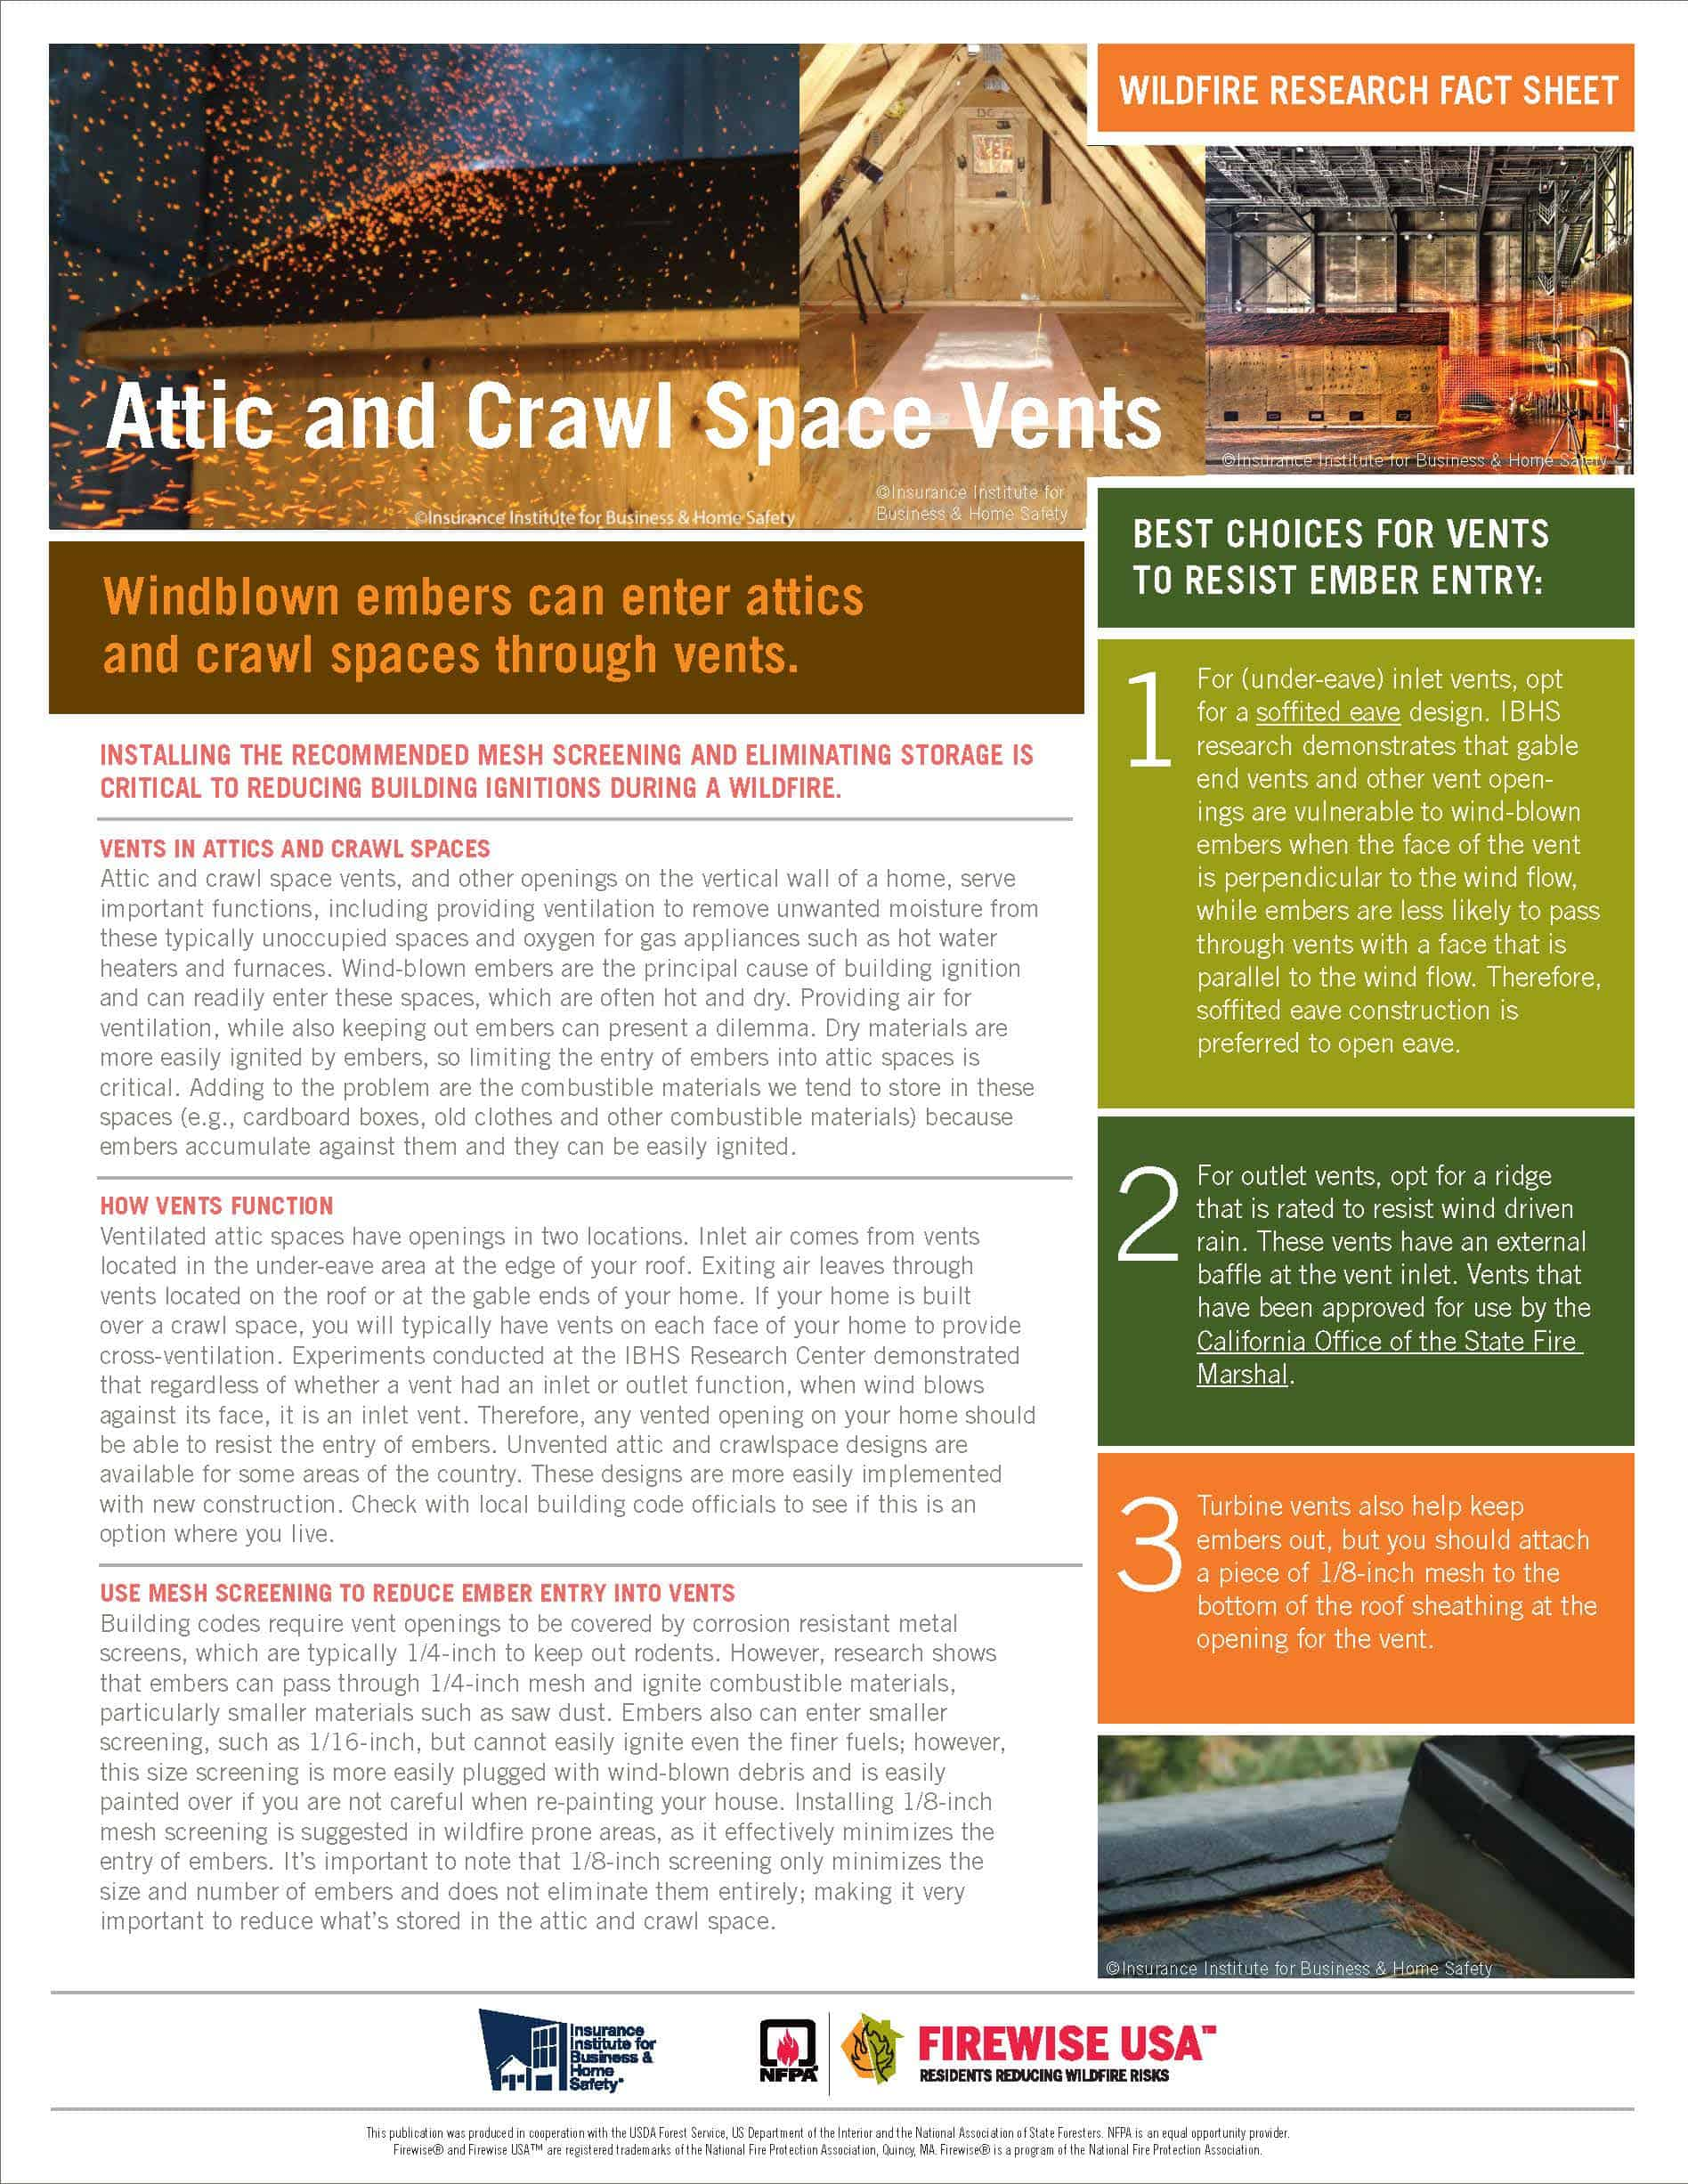 Screenshot of Attic and Crawl Space Vents fact sheet